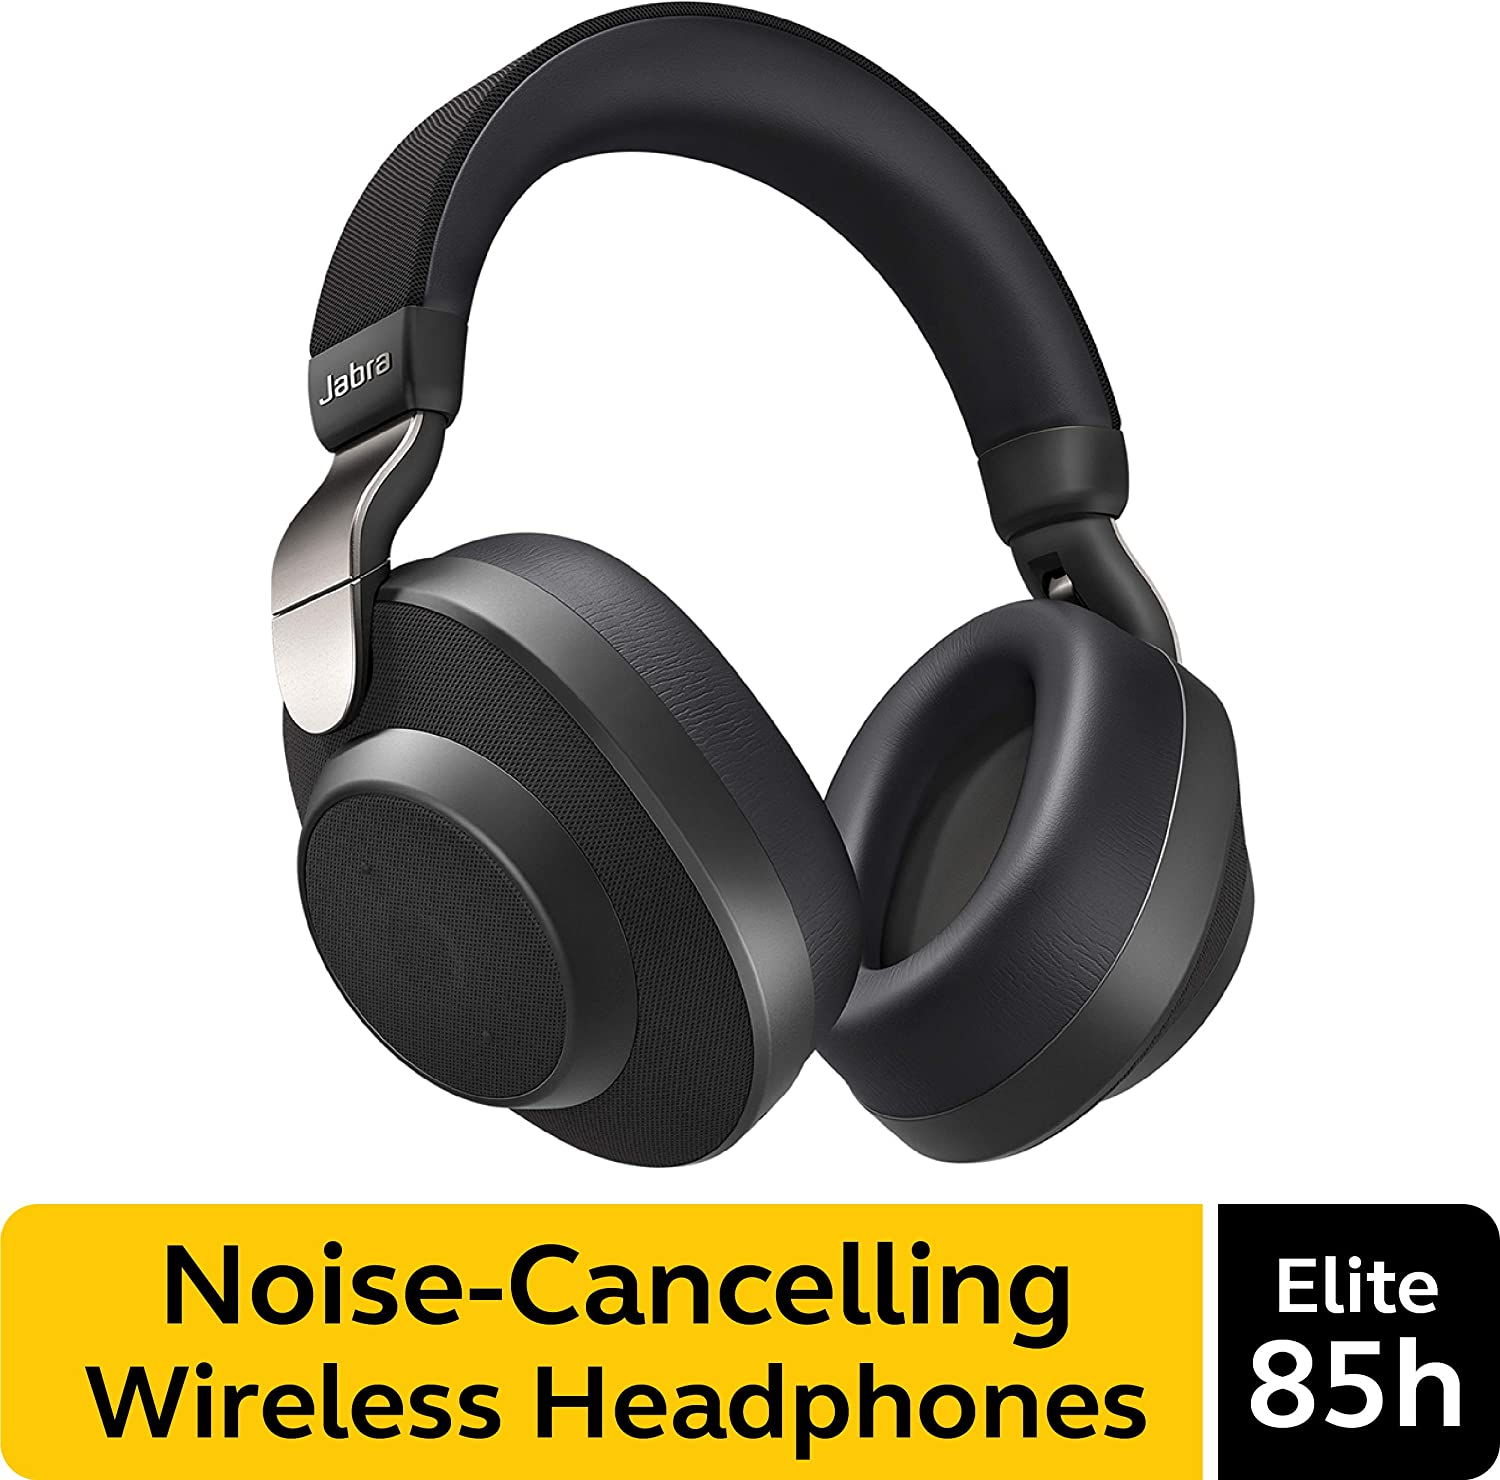 Jabra Elite 85h Wireless Noise-Canceling Headphones, Titanium Black – Over Ear Bluetooth Headphones Compatible with iPhone & Android - Built-in Microphone, Long Battery Life - Rain & Water Resistant